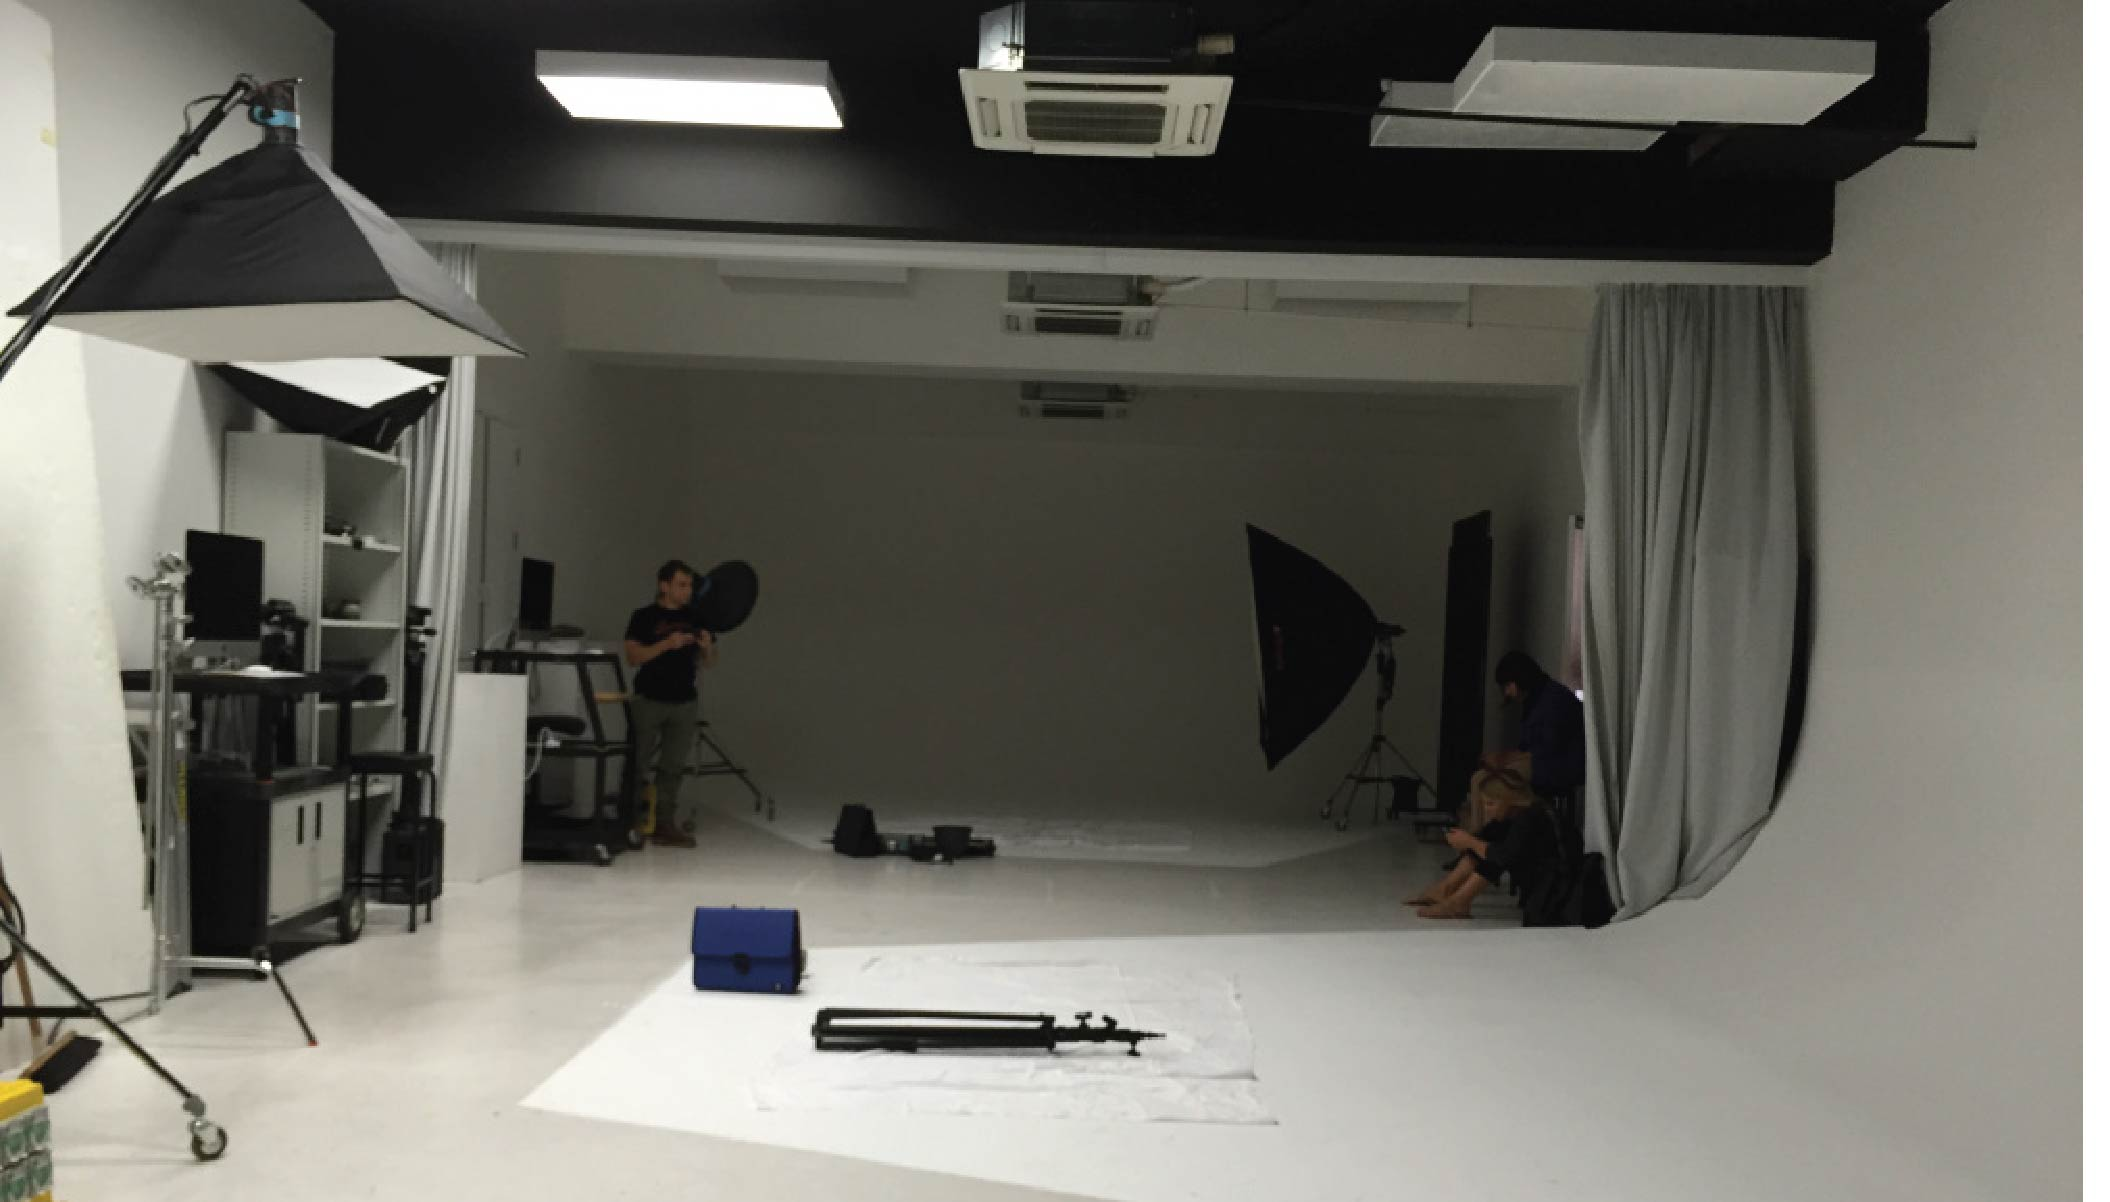 AUT's photography studio